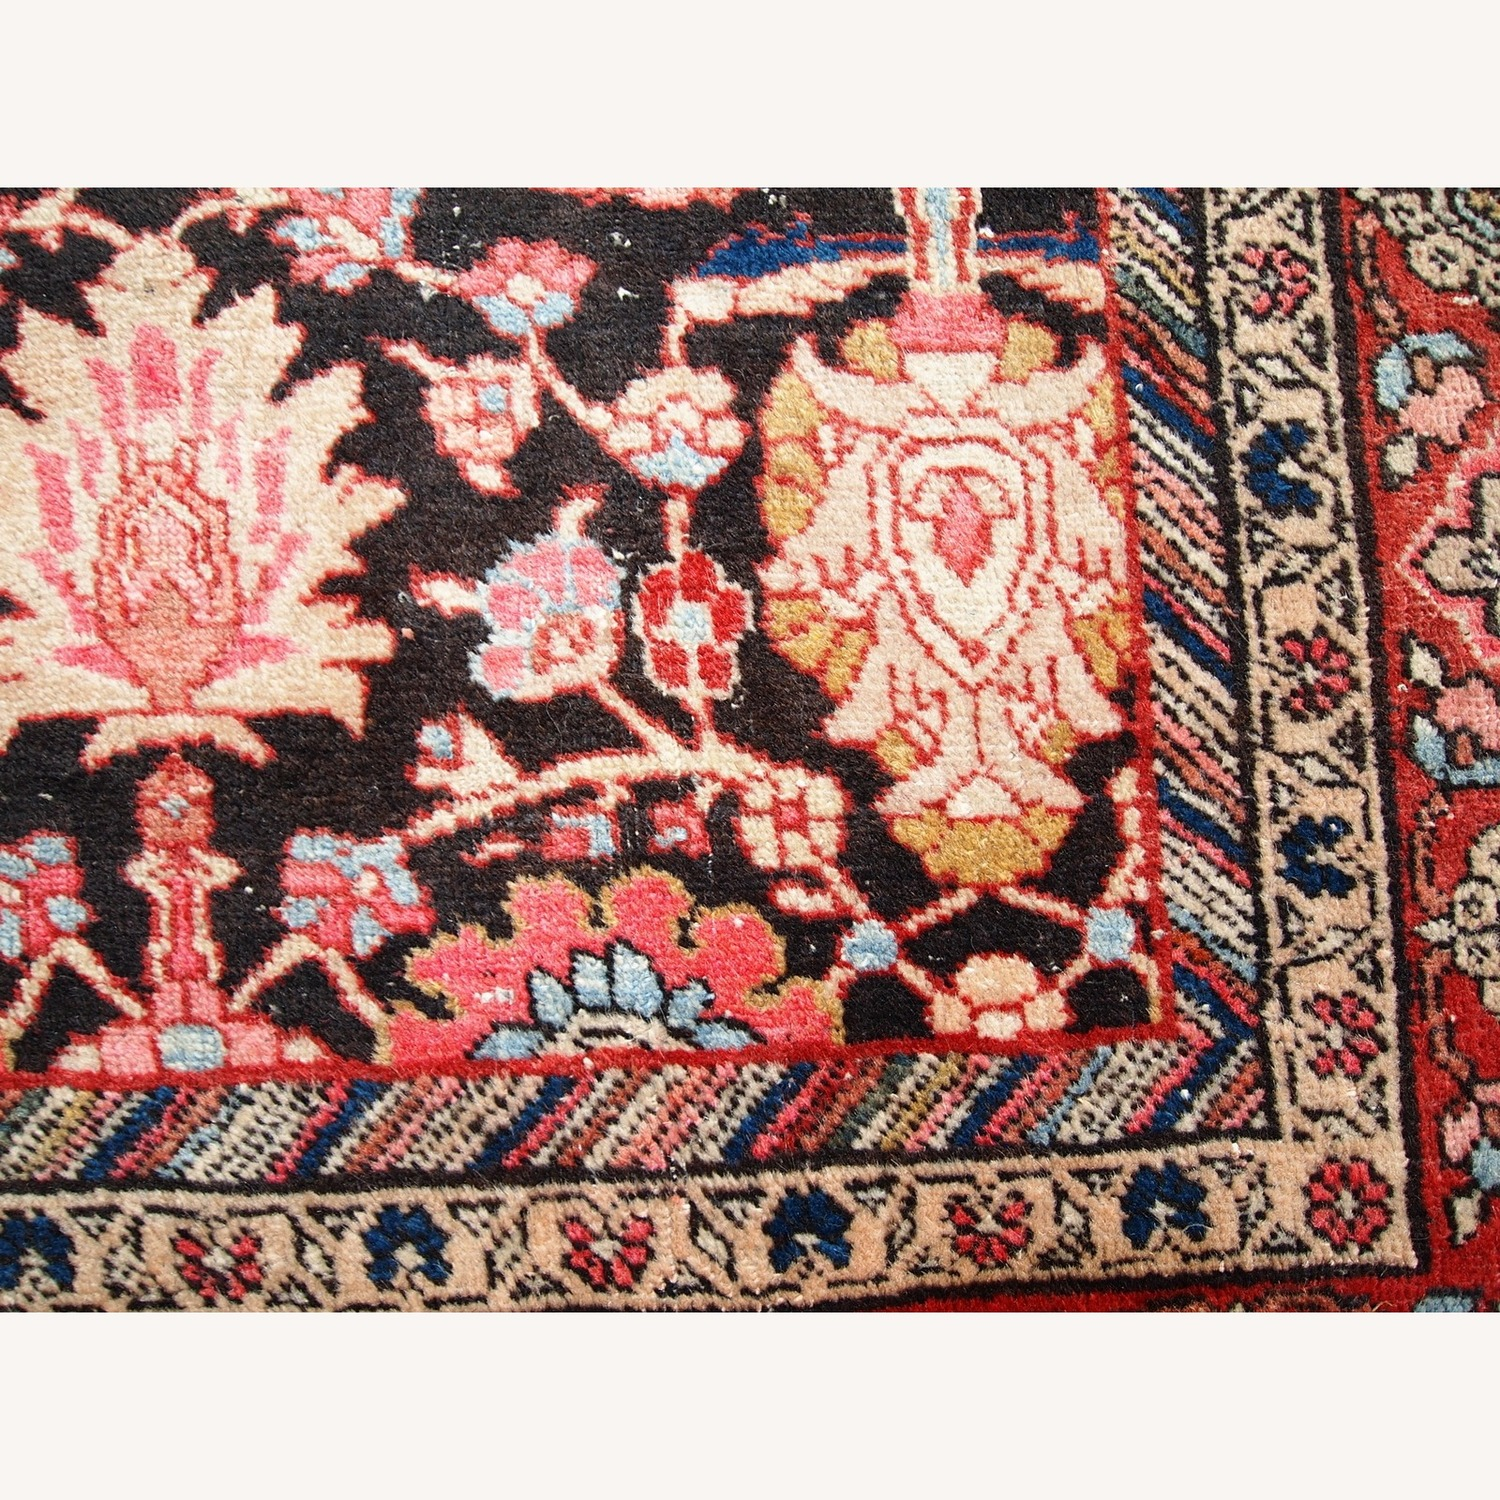 Handmade Antique Persian Bidjar Rug - image-7